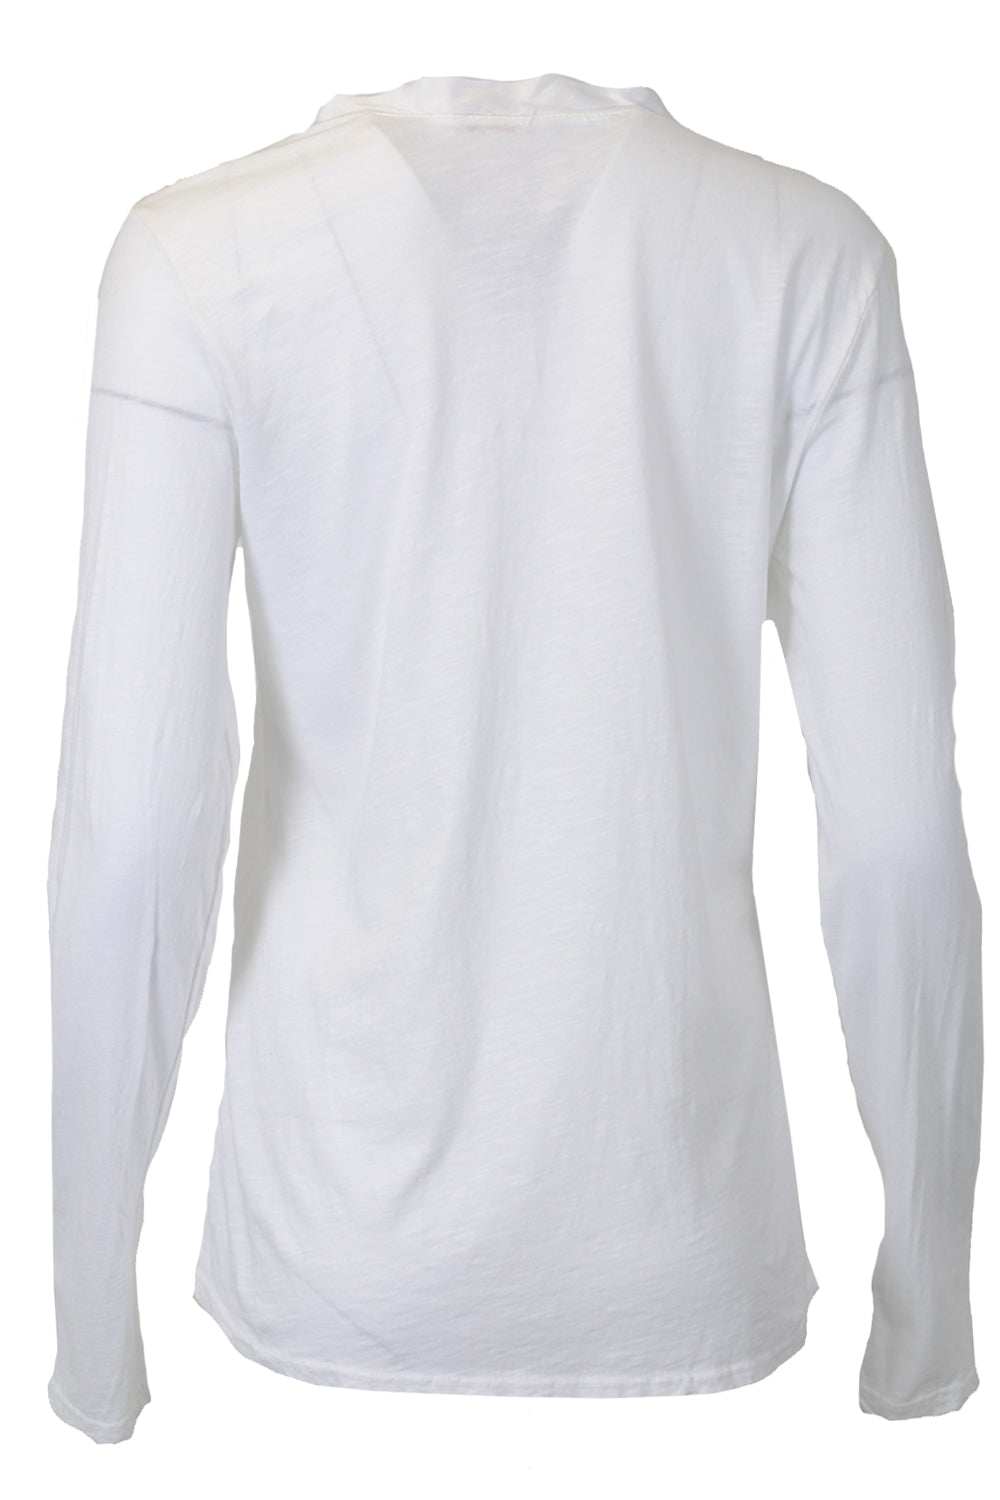 Suzy D Pocket Long Sleeve Top Button Detail White